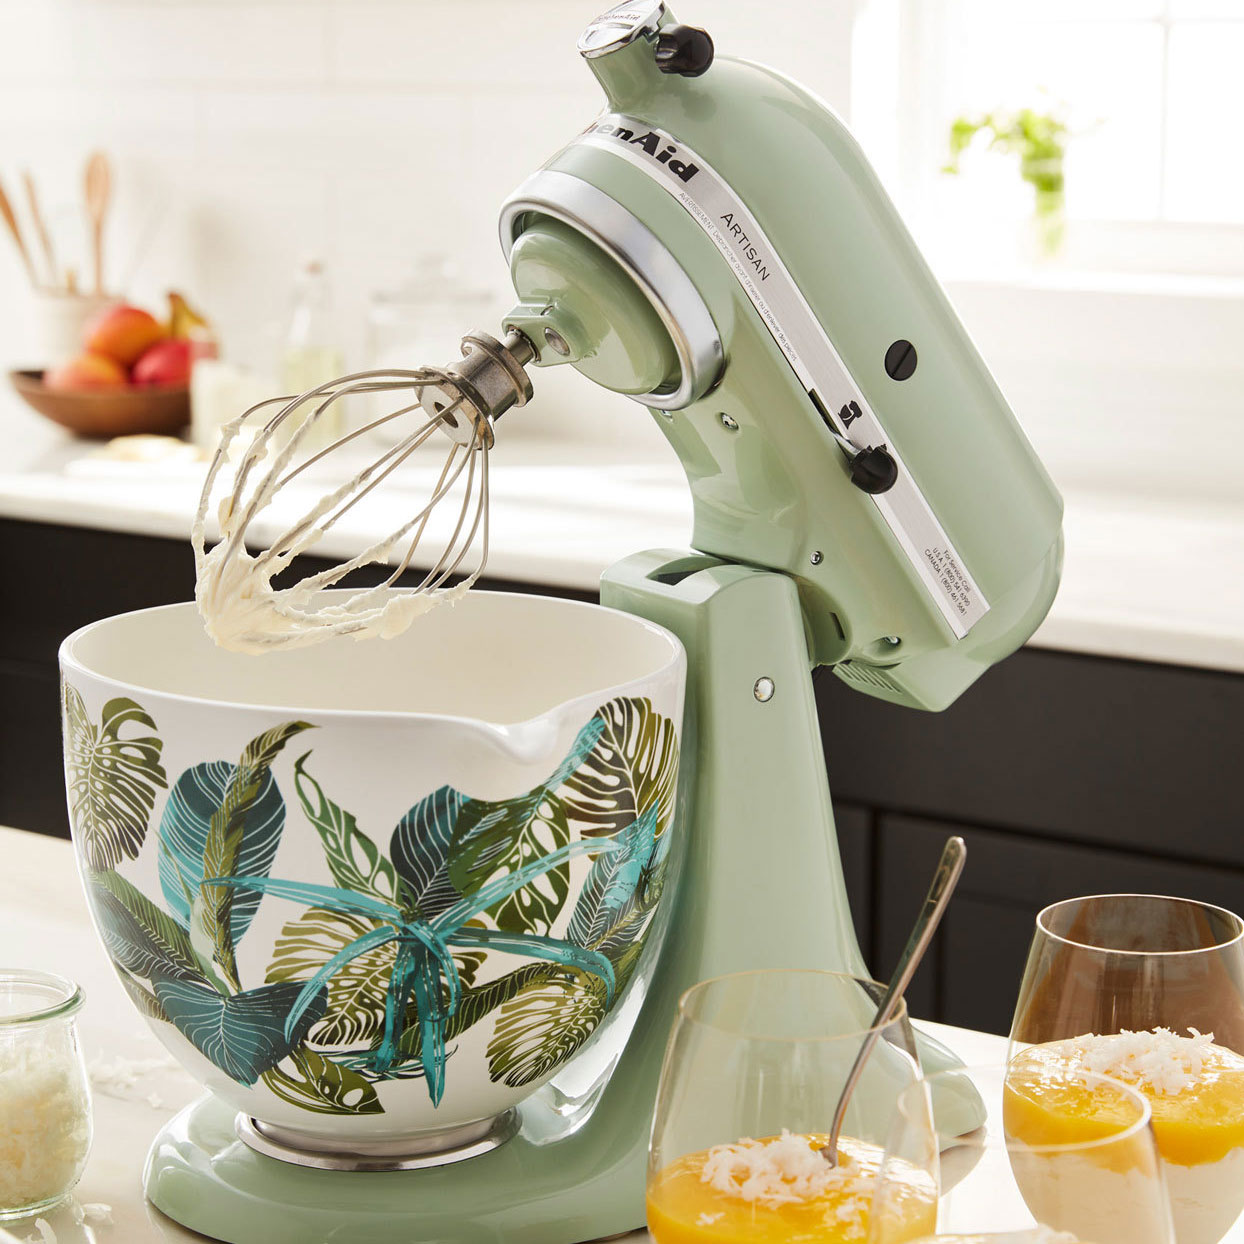 Pistachio colored KitchenAid mixer with decorative bowl with tropical leaves print on the outside